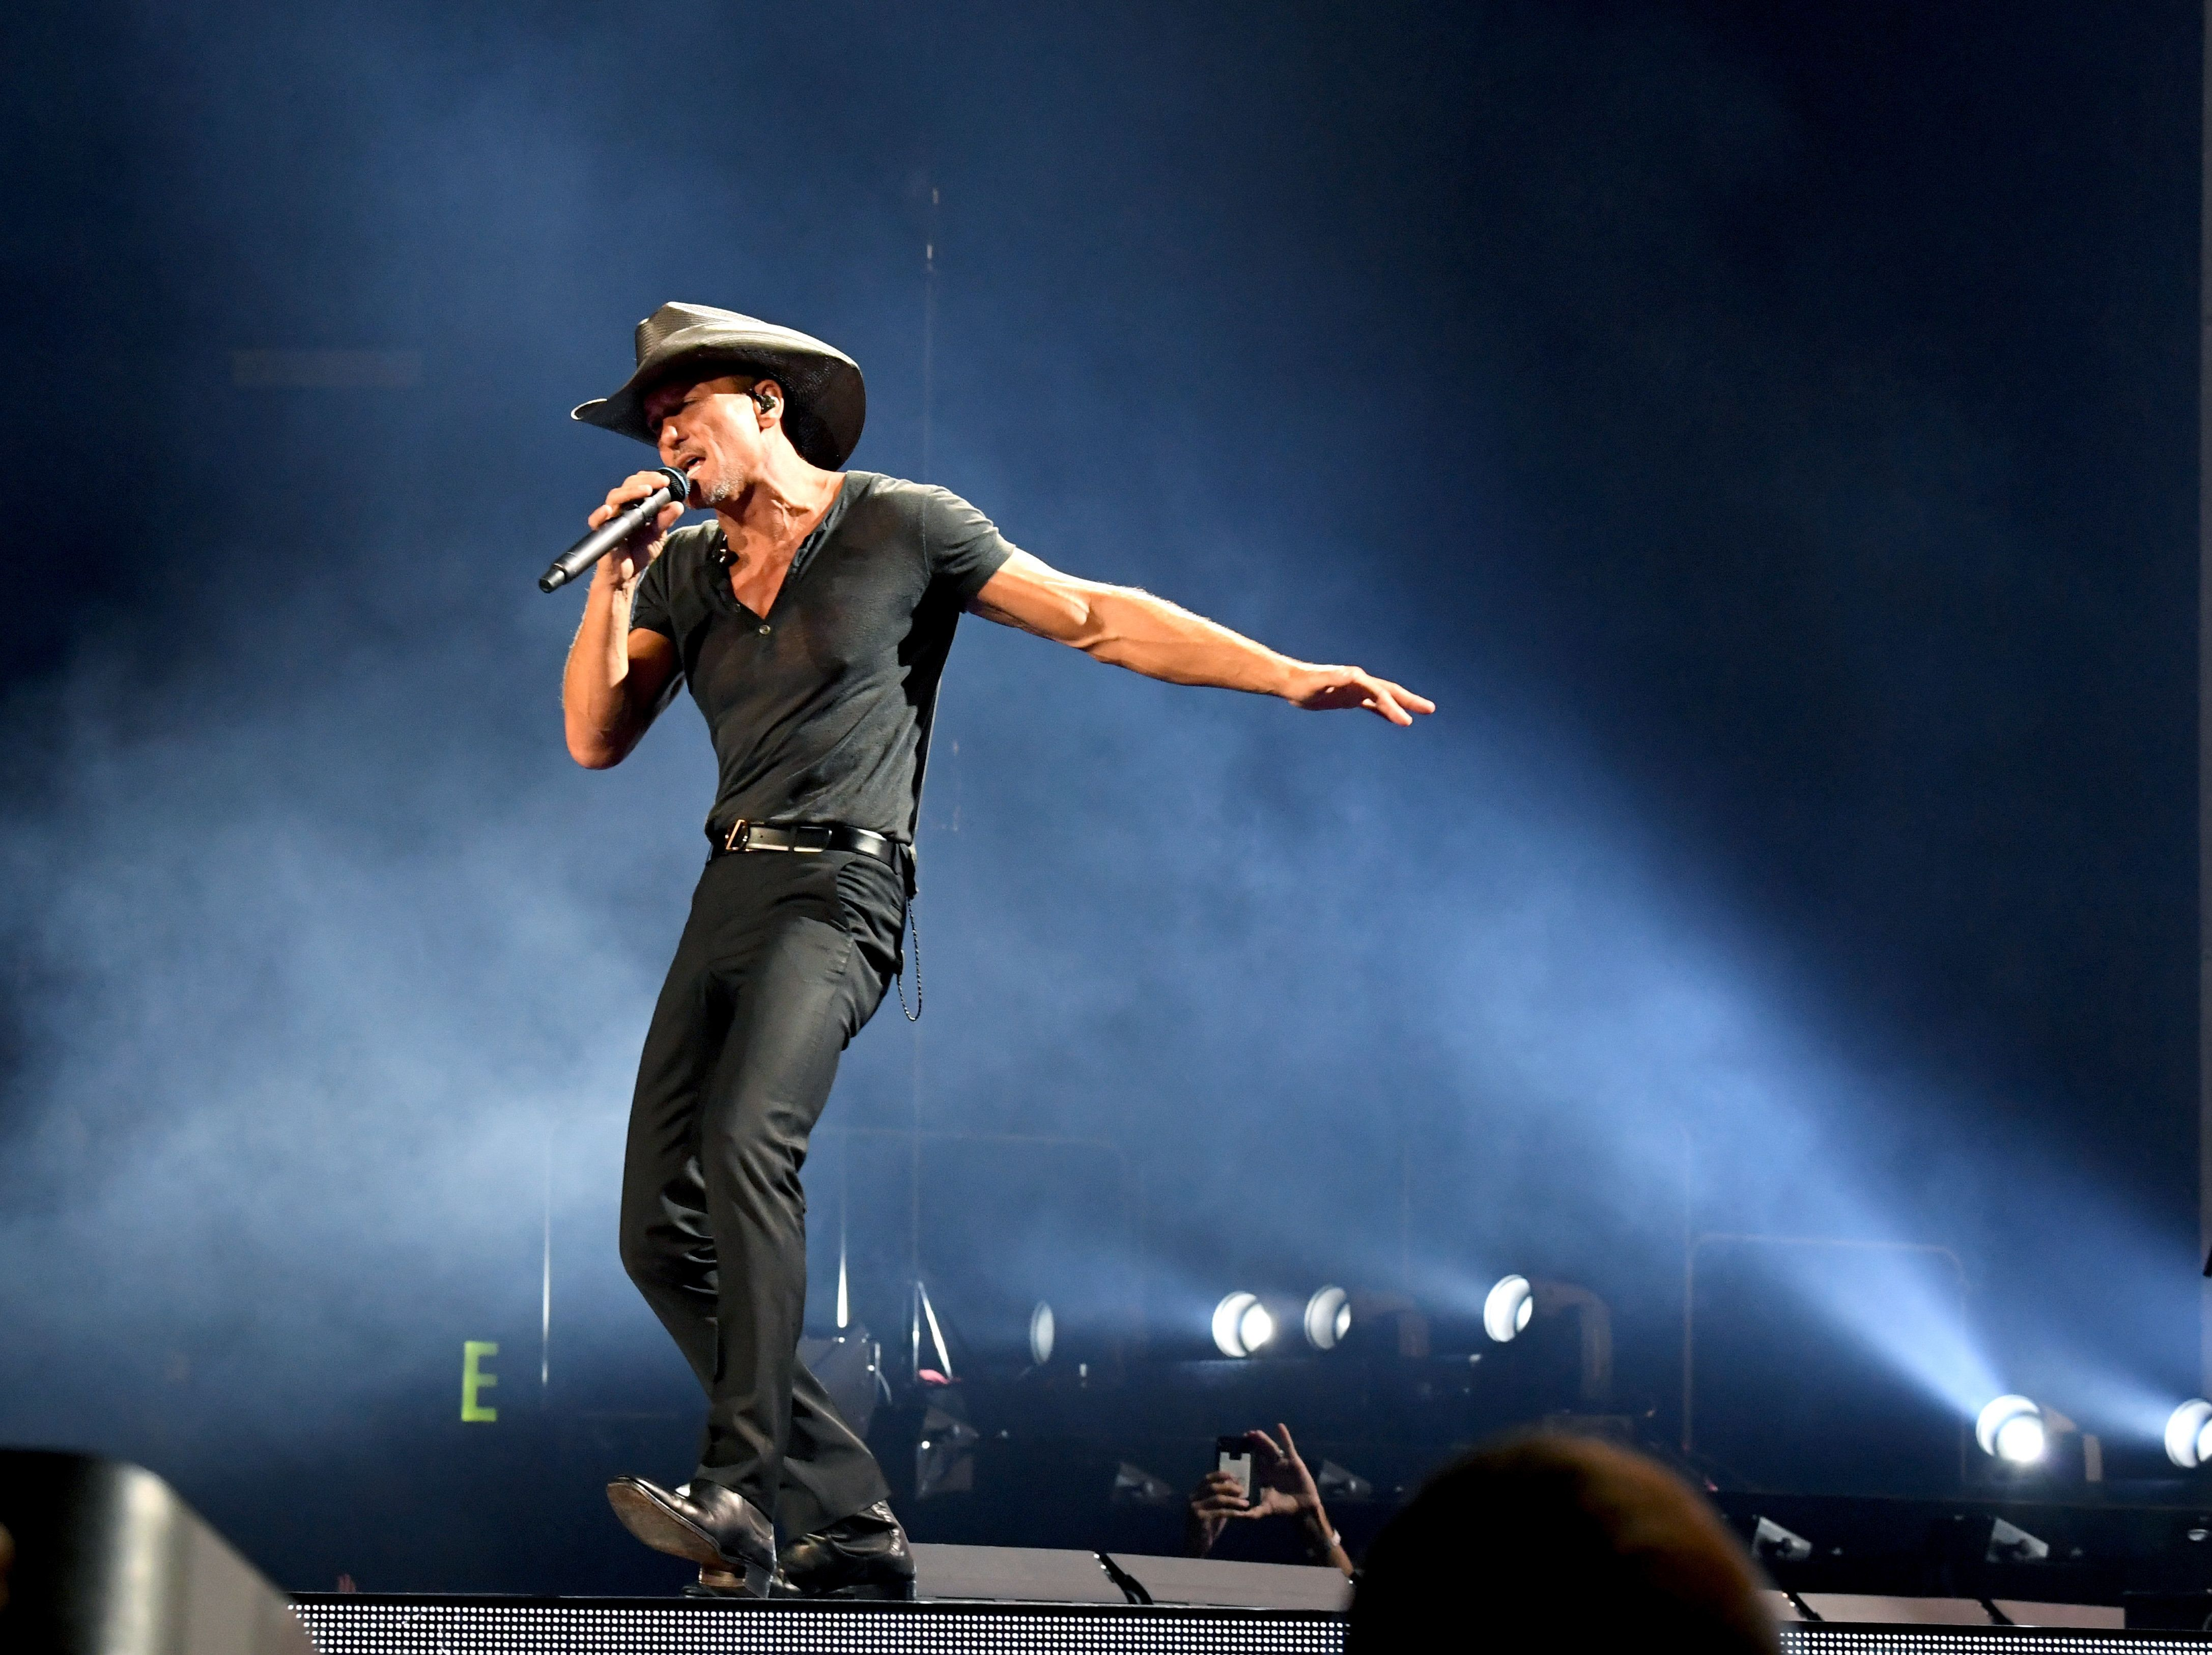 Country music star Tim McGraw collapsed on stage Sunday in Ireland after apparently suffering from dehydration.